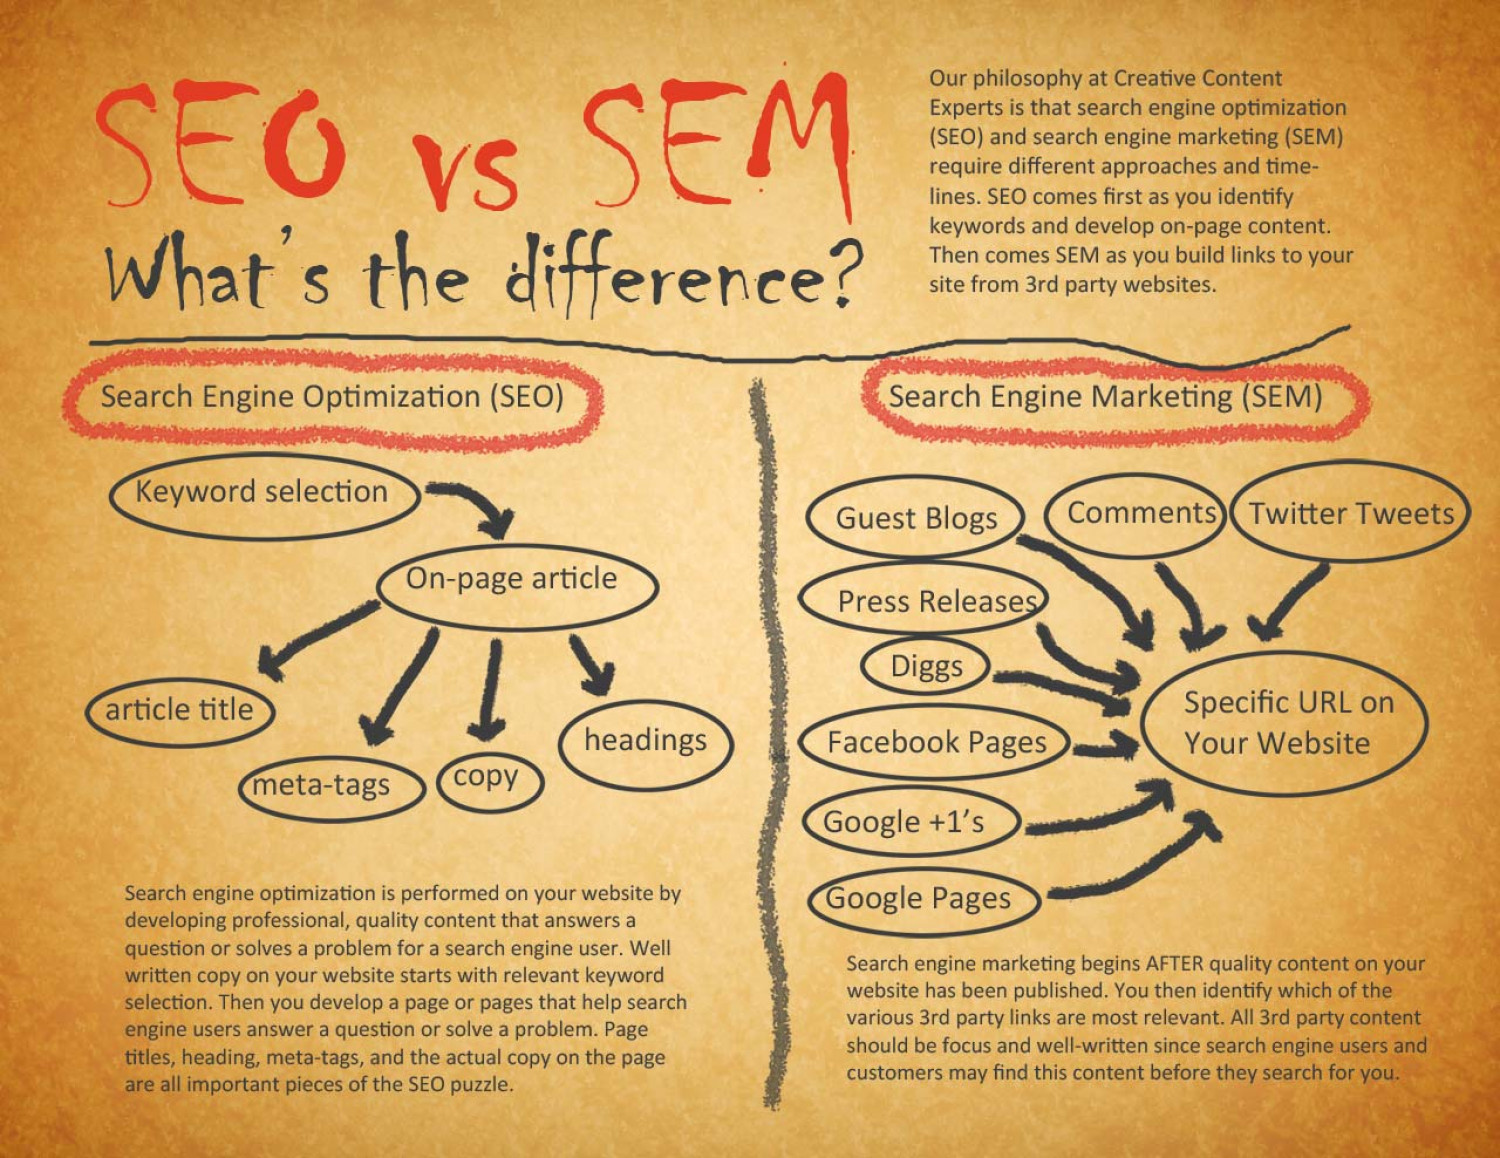 SEO vs SEM: What's the Difference? Infographic